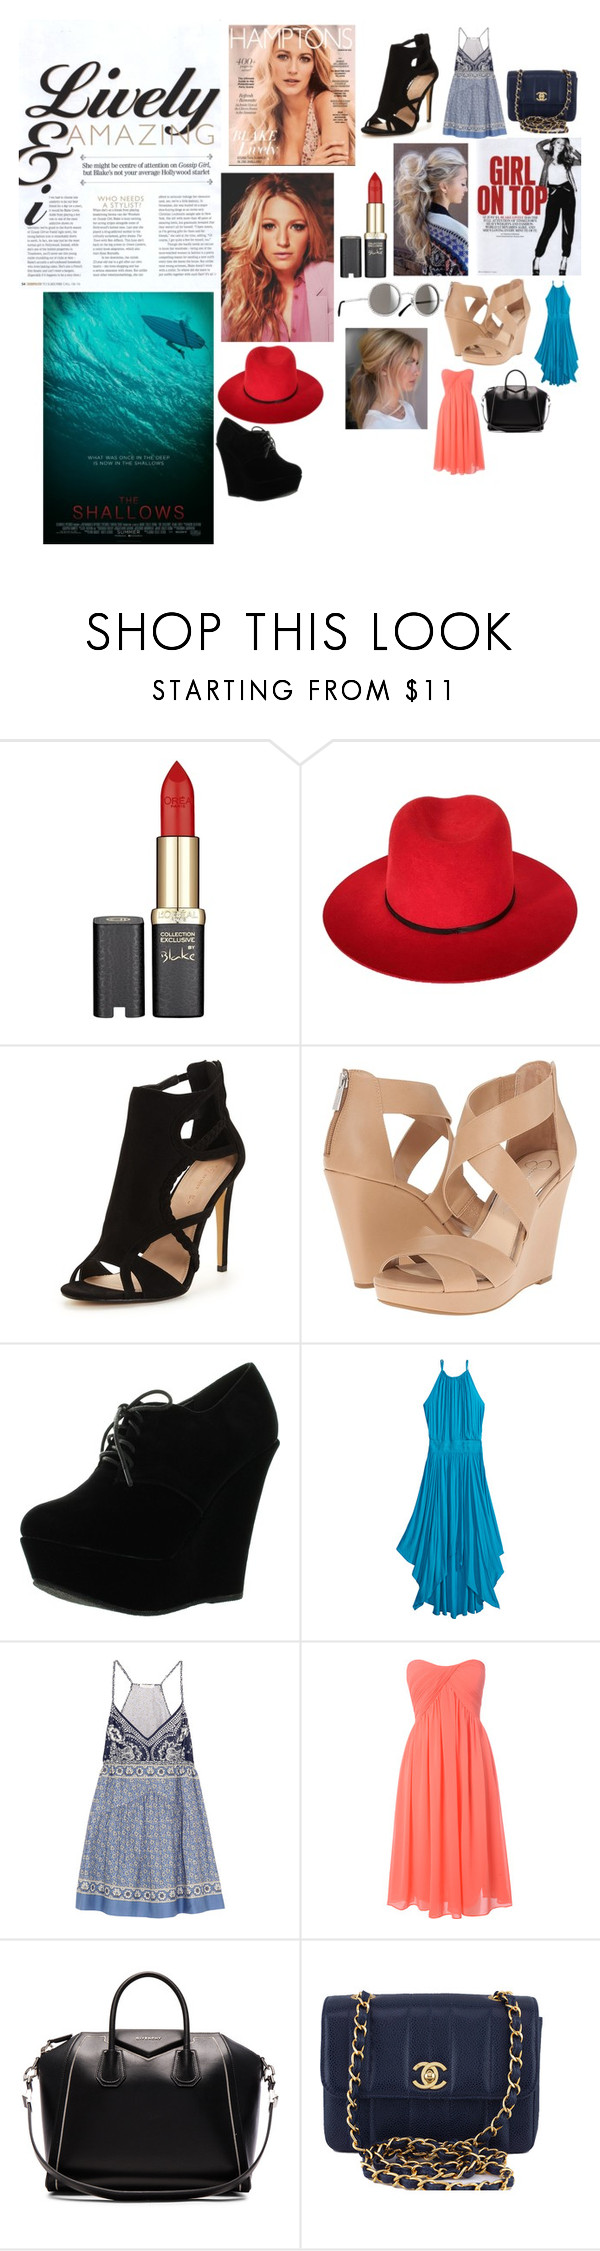 """""""Blake Lively Fashion"""" by colorado-nutella-lover ❤ liked on Polyvore featuring L'Oréal Paris, Janessa Leone, Chanel, Jessica Simpson, Forever Link, Calypso St. Barth, Chloé, Glamorous, Givenchy and gorgeous"""